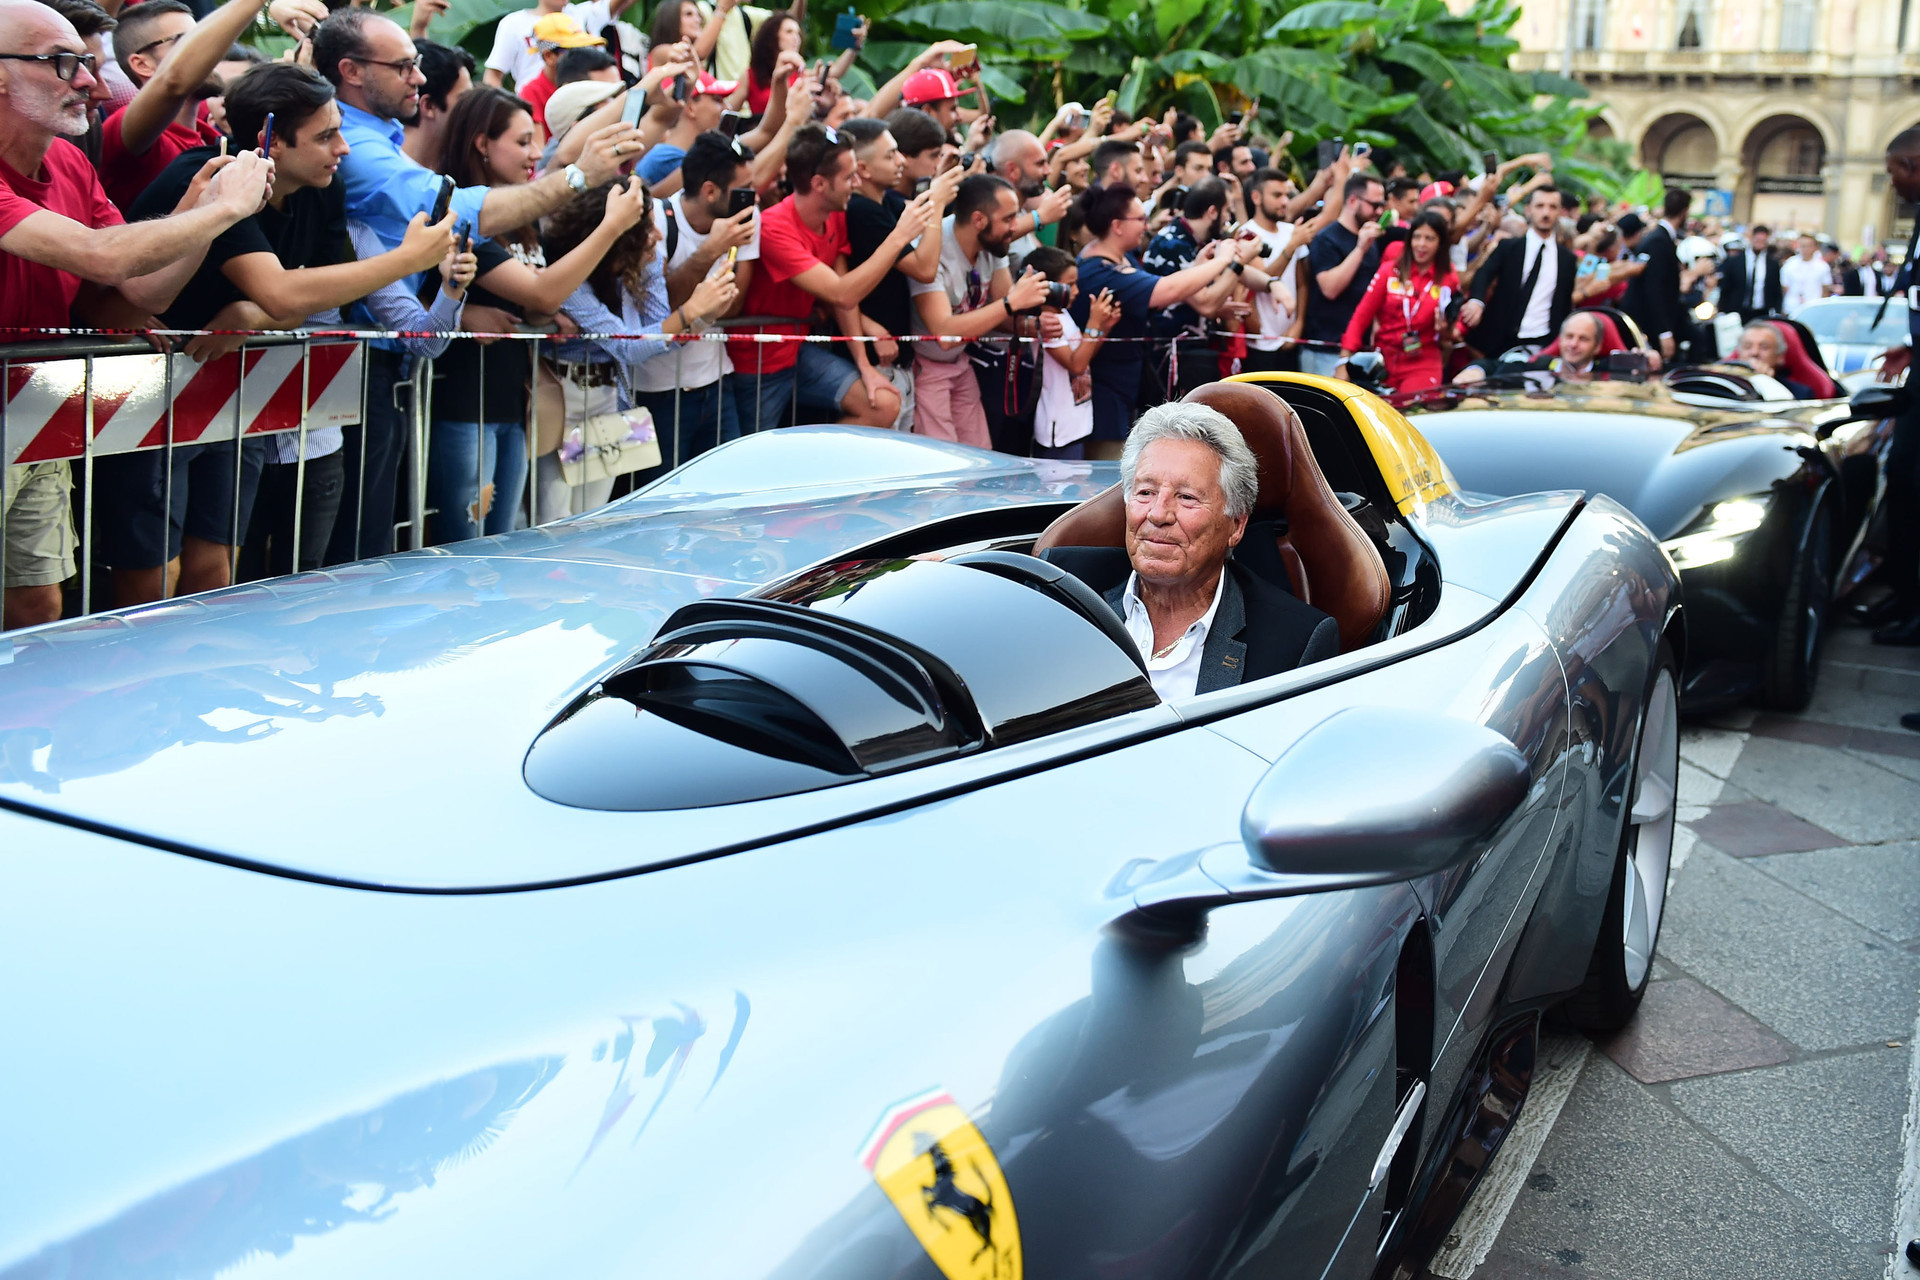 2019 Ferrari 90 Years celebration at Milan | 4 Sept 2019 website 12.jpg